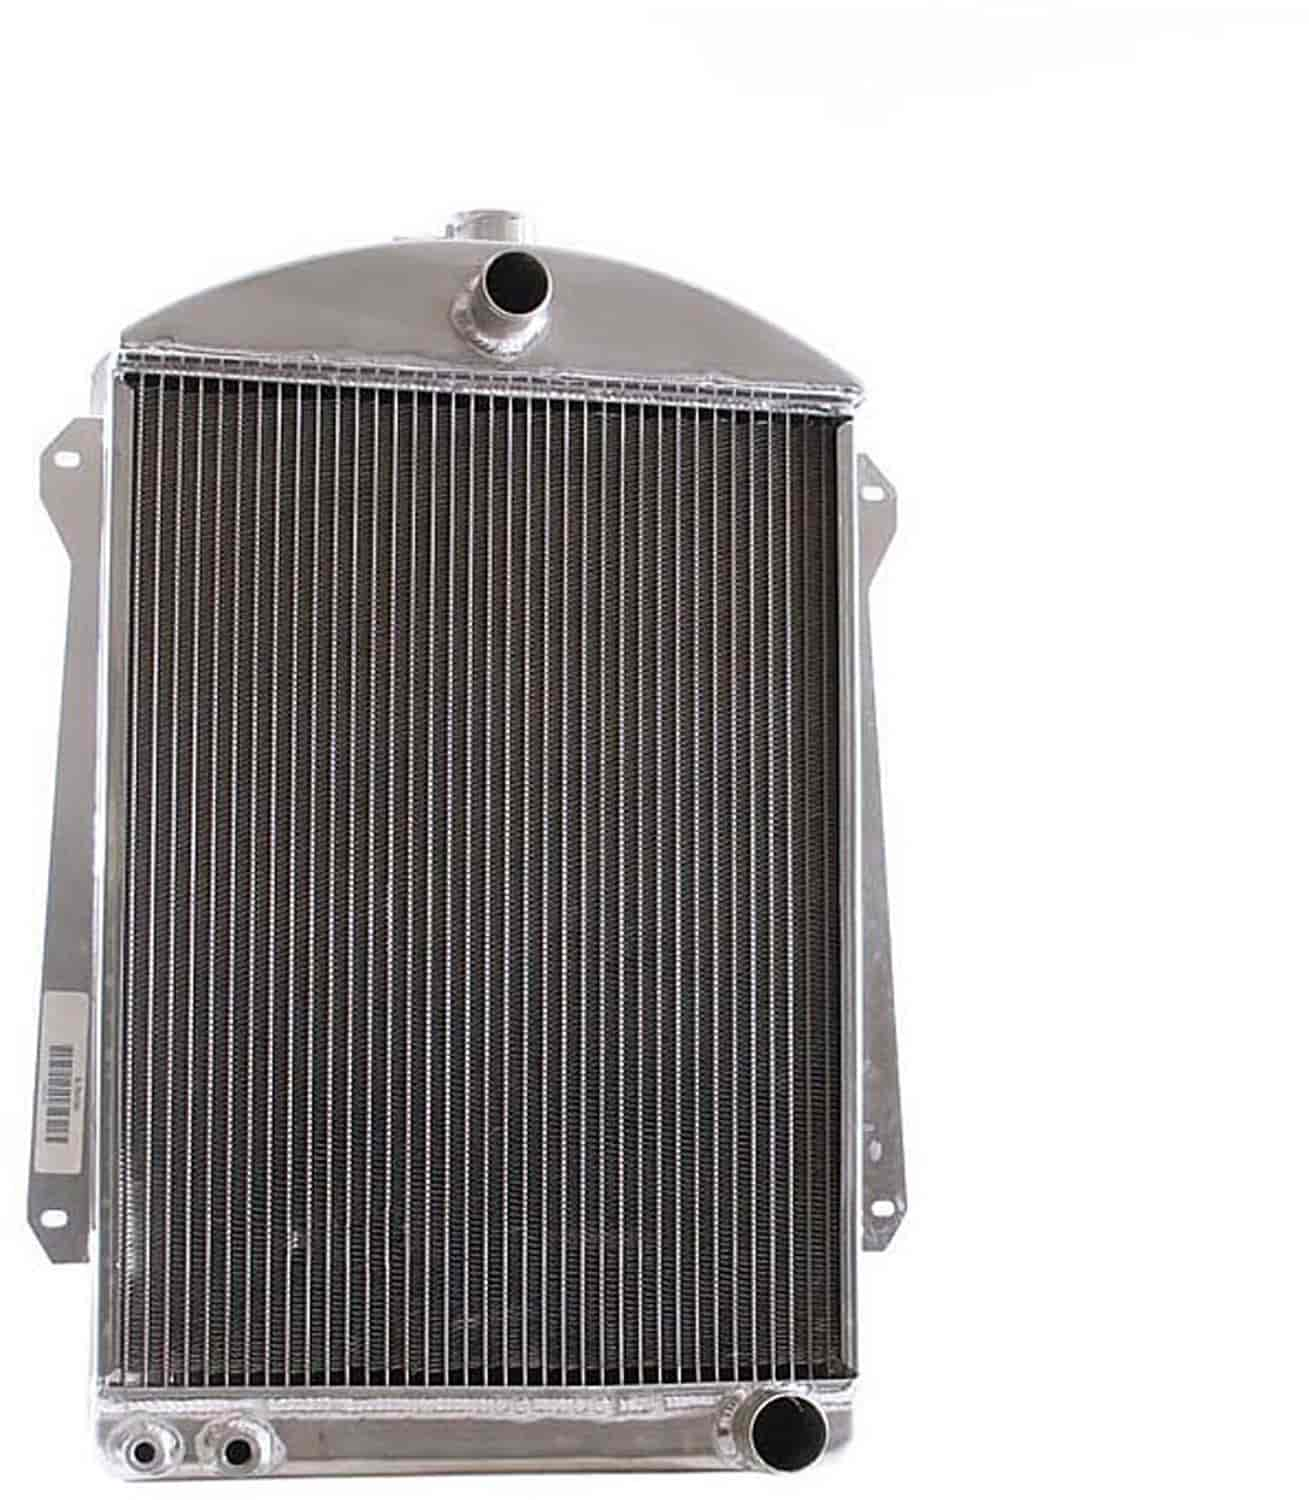 Griffin Radiators 6-00100